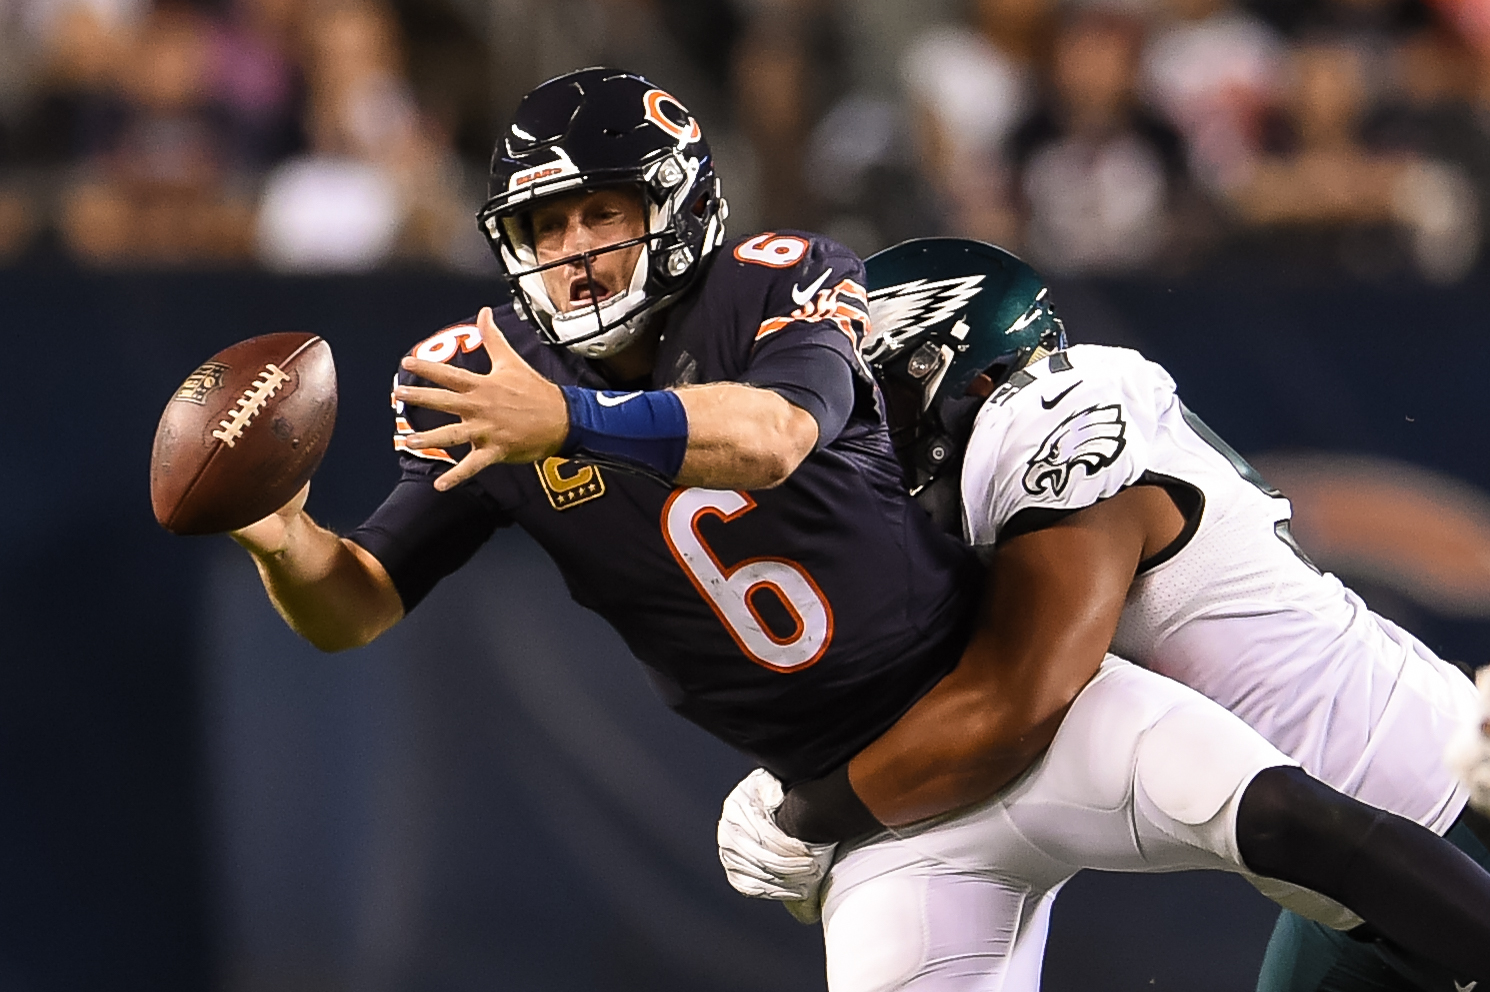 Jay Cutler fumbles the ball Monday night against the Eagles. (Photo by Stacy Revere/Getty Images)